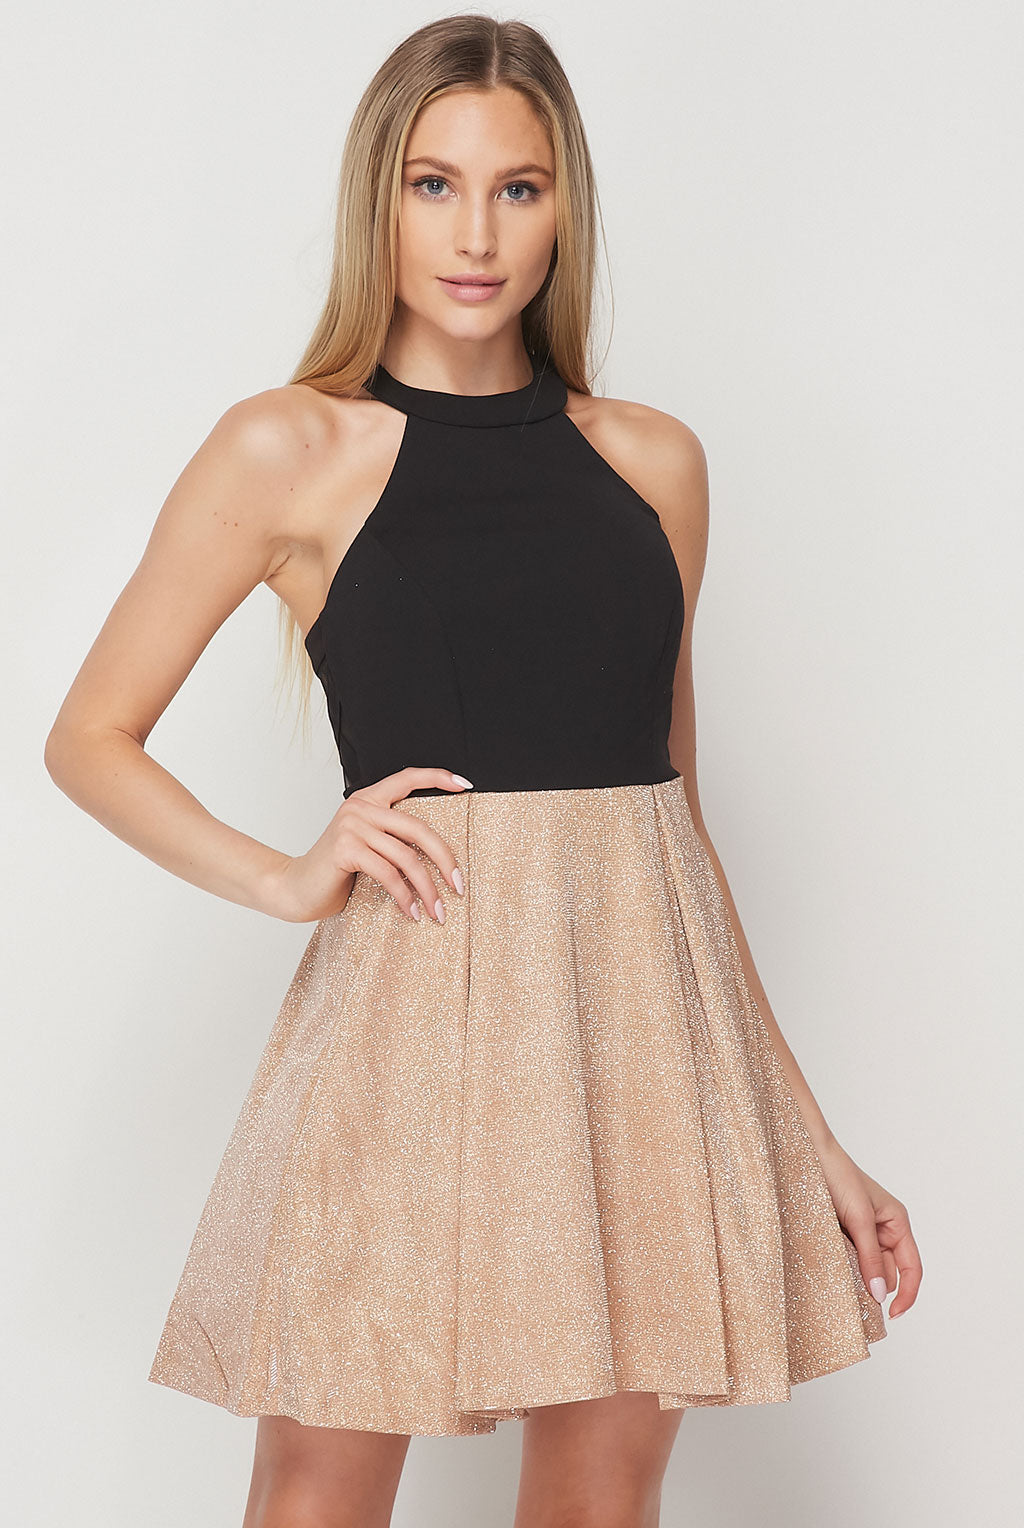 Teeze Me | Halter Top Glitter Skirt Fit And Flare Dress | Gold/Black